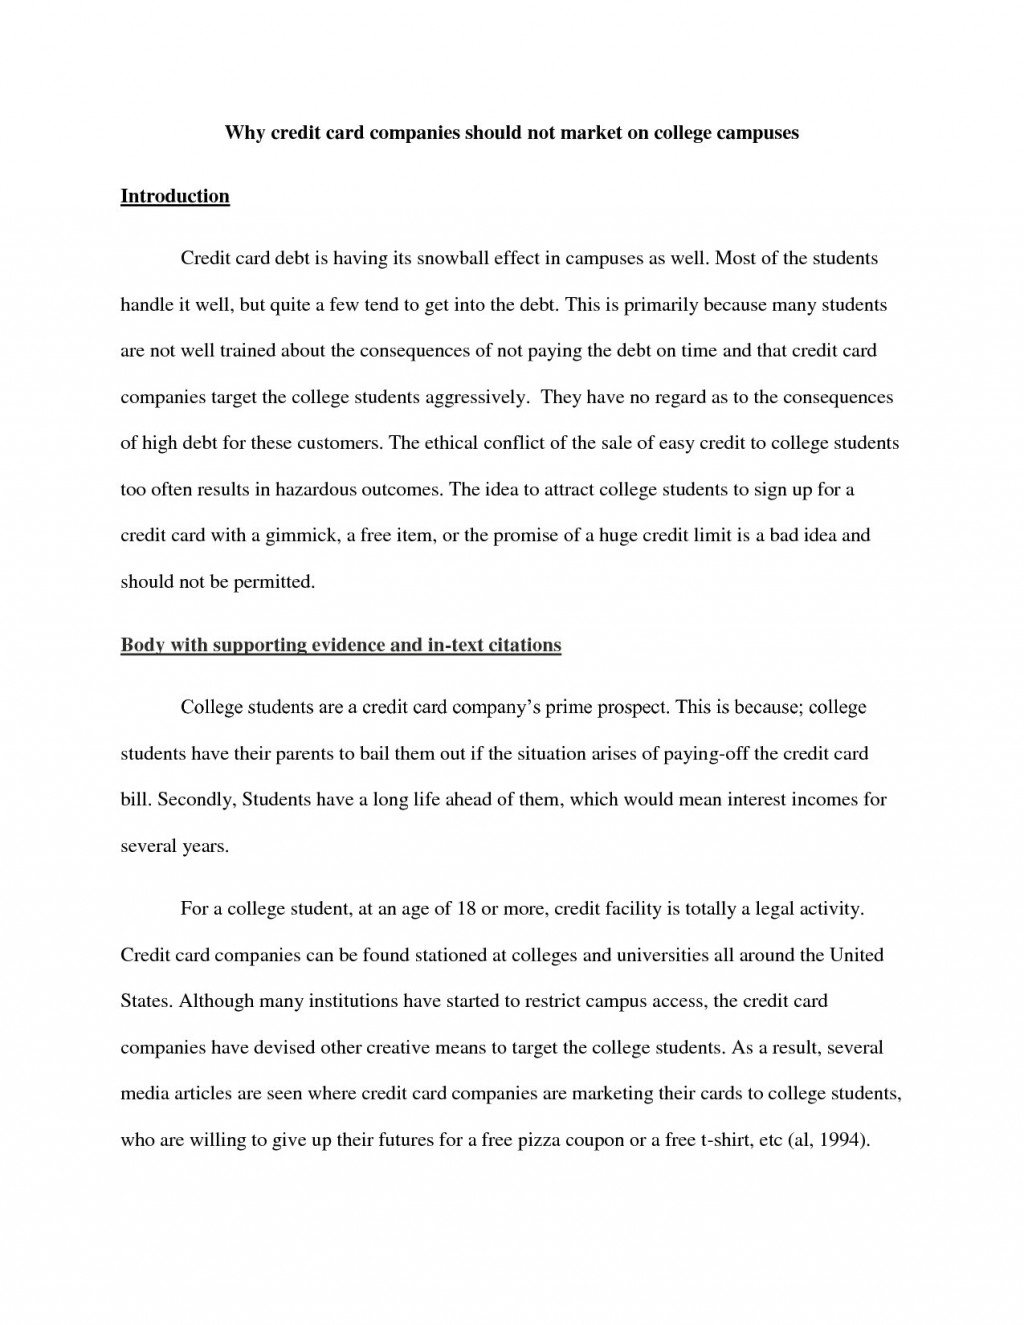 002 Research Paper Healthcare Argumentative Topics College Level Persuasive Essay Resume Easy Com On Health Care Reform The Stunning Large